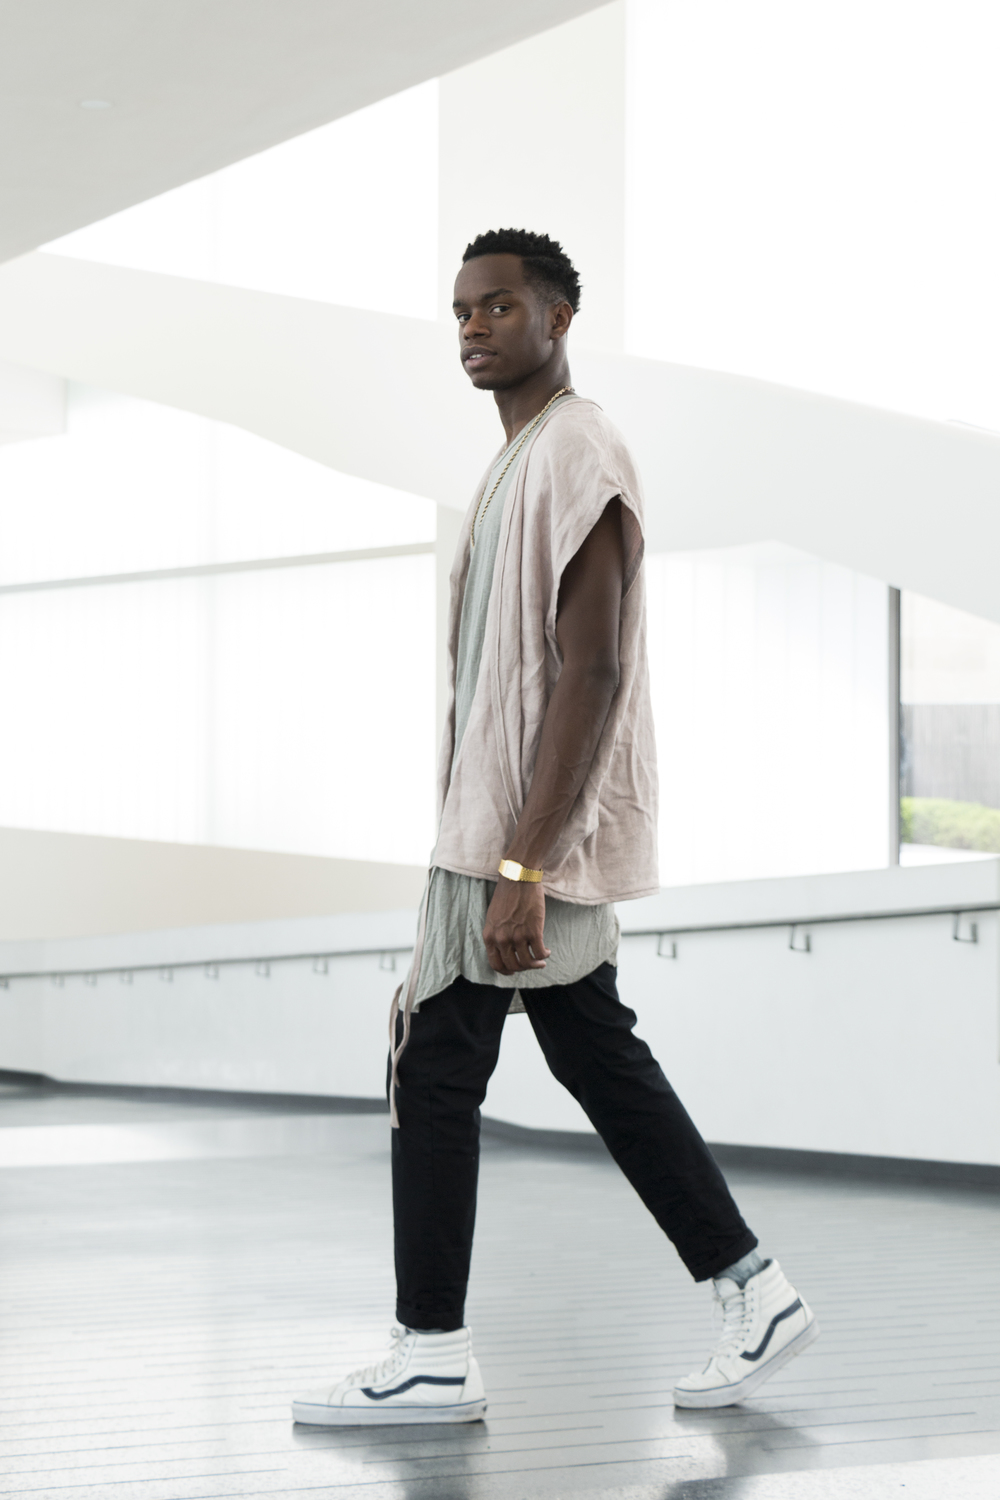 This image depicts designer Myles Thompson wearing an outfit from his collection called Myles Lorenzo, a collaboration between both Myles and Luis Gonzalez. This collection follows the progression of the Margin Collection and Contemporary Unisex Streetwear.      To learn more about this, please visit www.myleslorenzo.com or click the image.